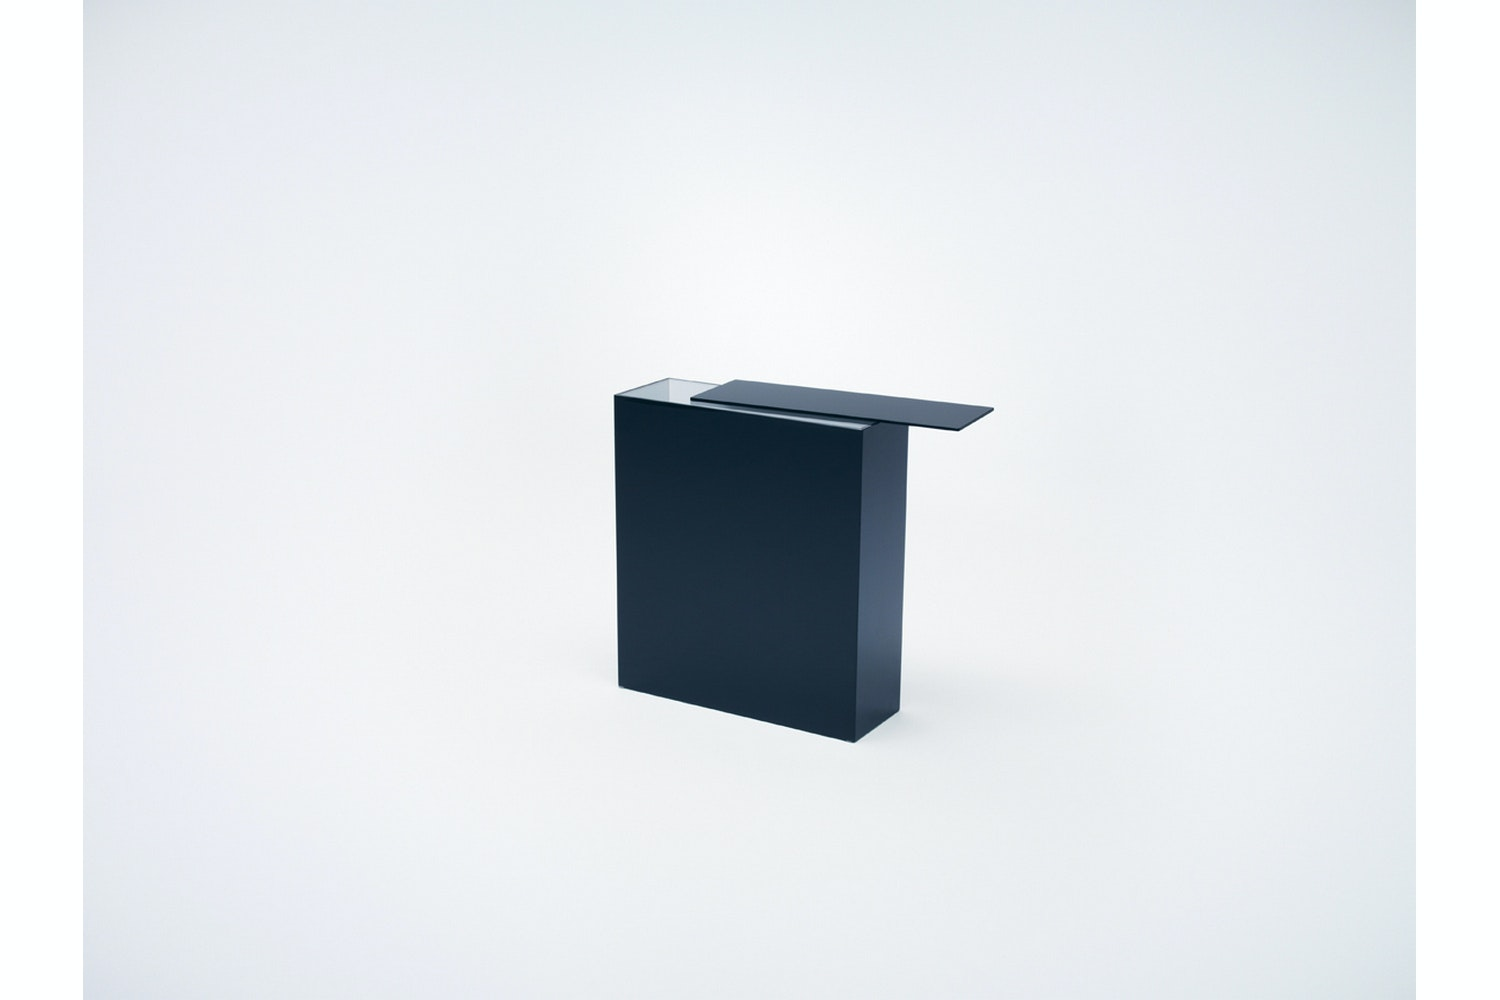 Slide Tavoli e Consolle by Nendo for Glas Italia